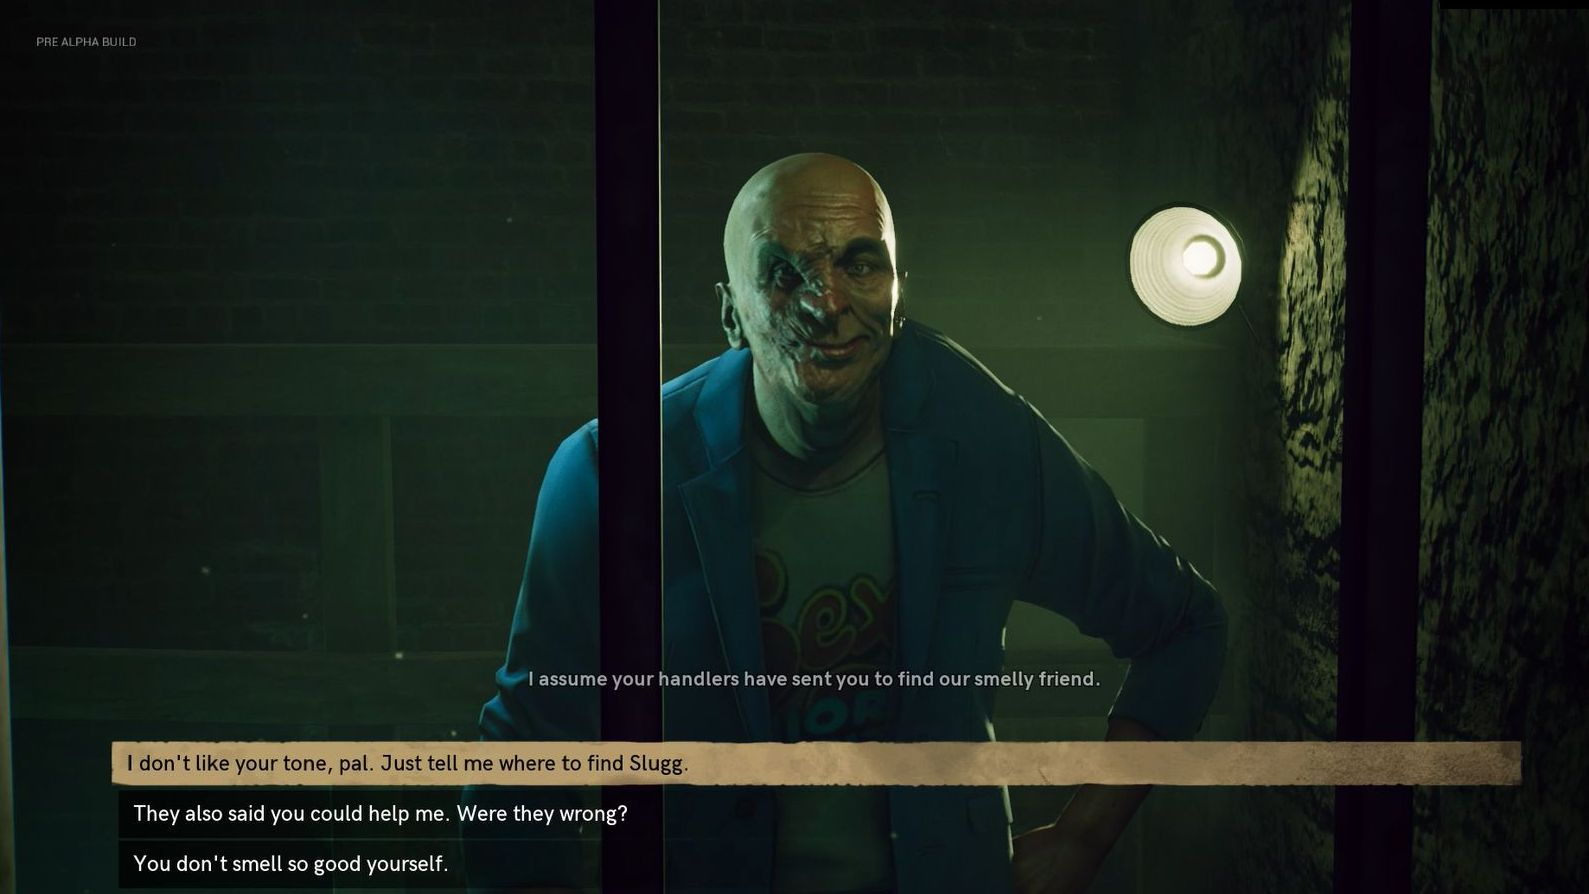 Bloodlines 2's dialogue system looks more subtle than the original